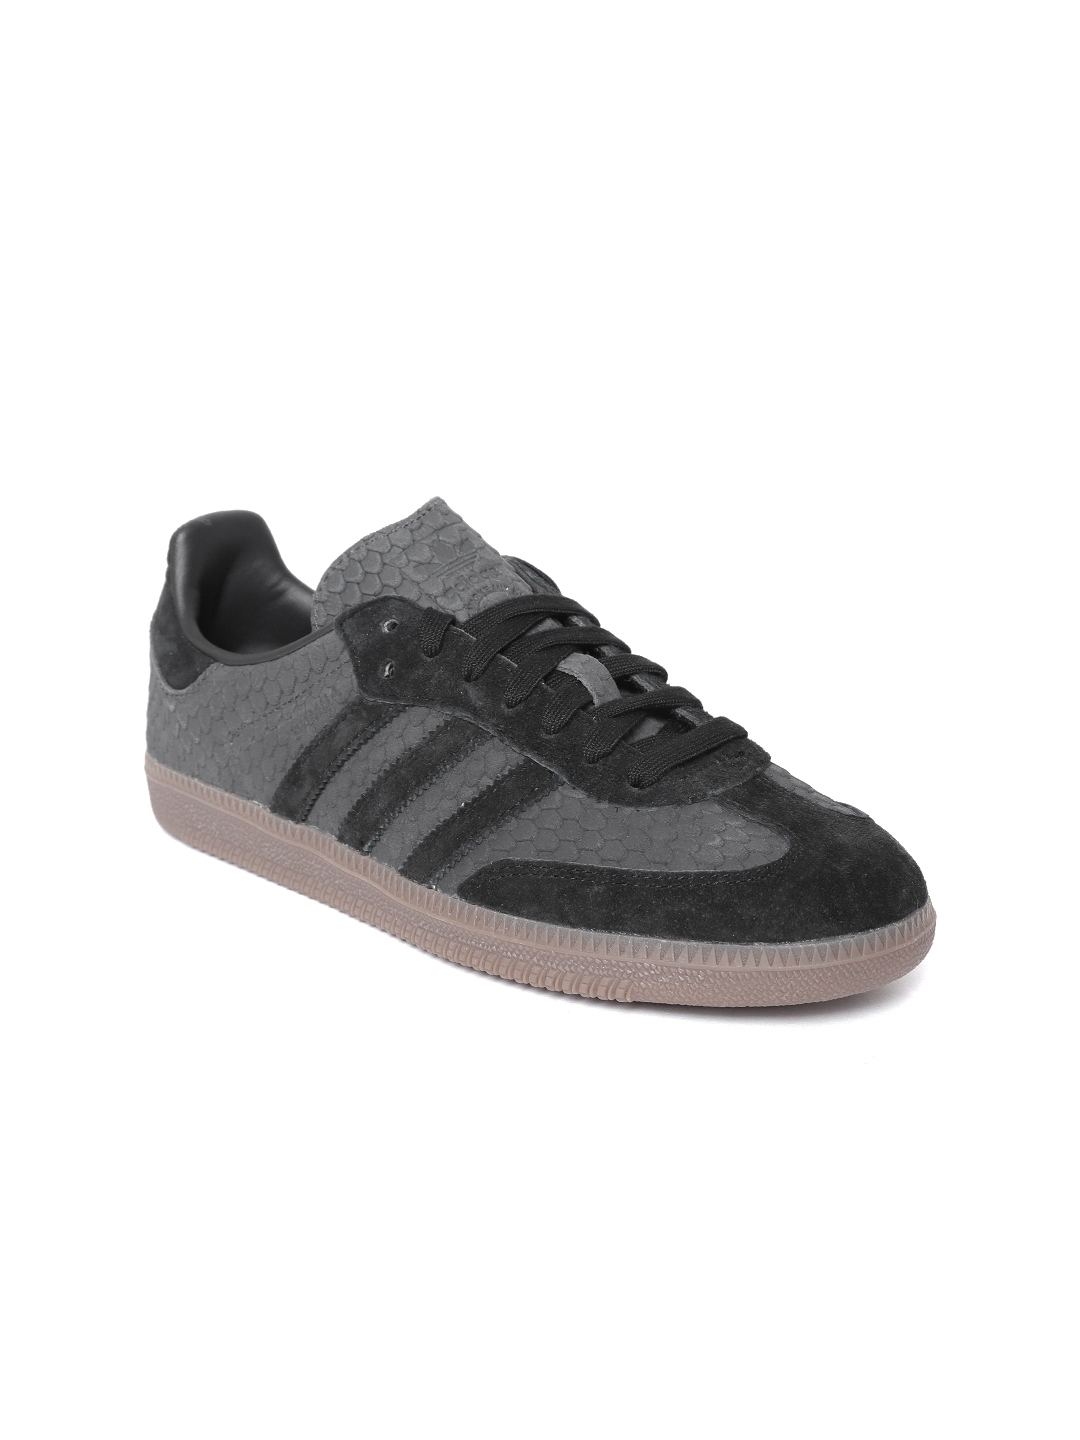 547d053ca52c0a ADIDAS Originals Women Charcoal Grey   Black Snake Skin Textured Samba OG  Sneakers